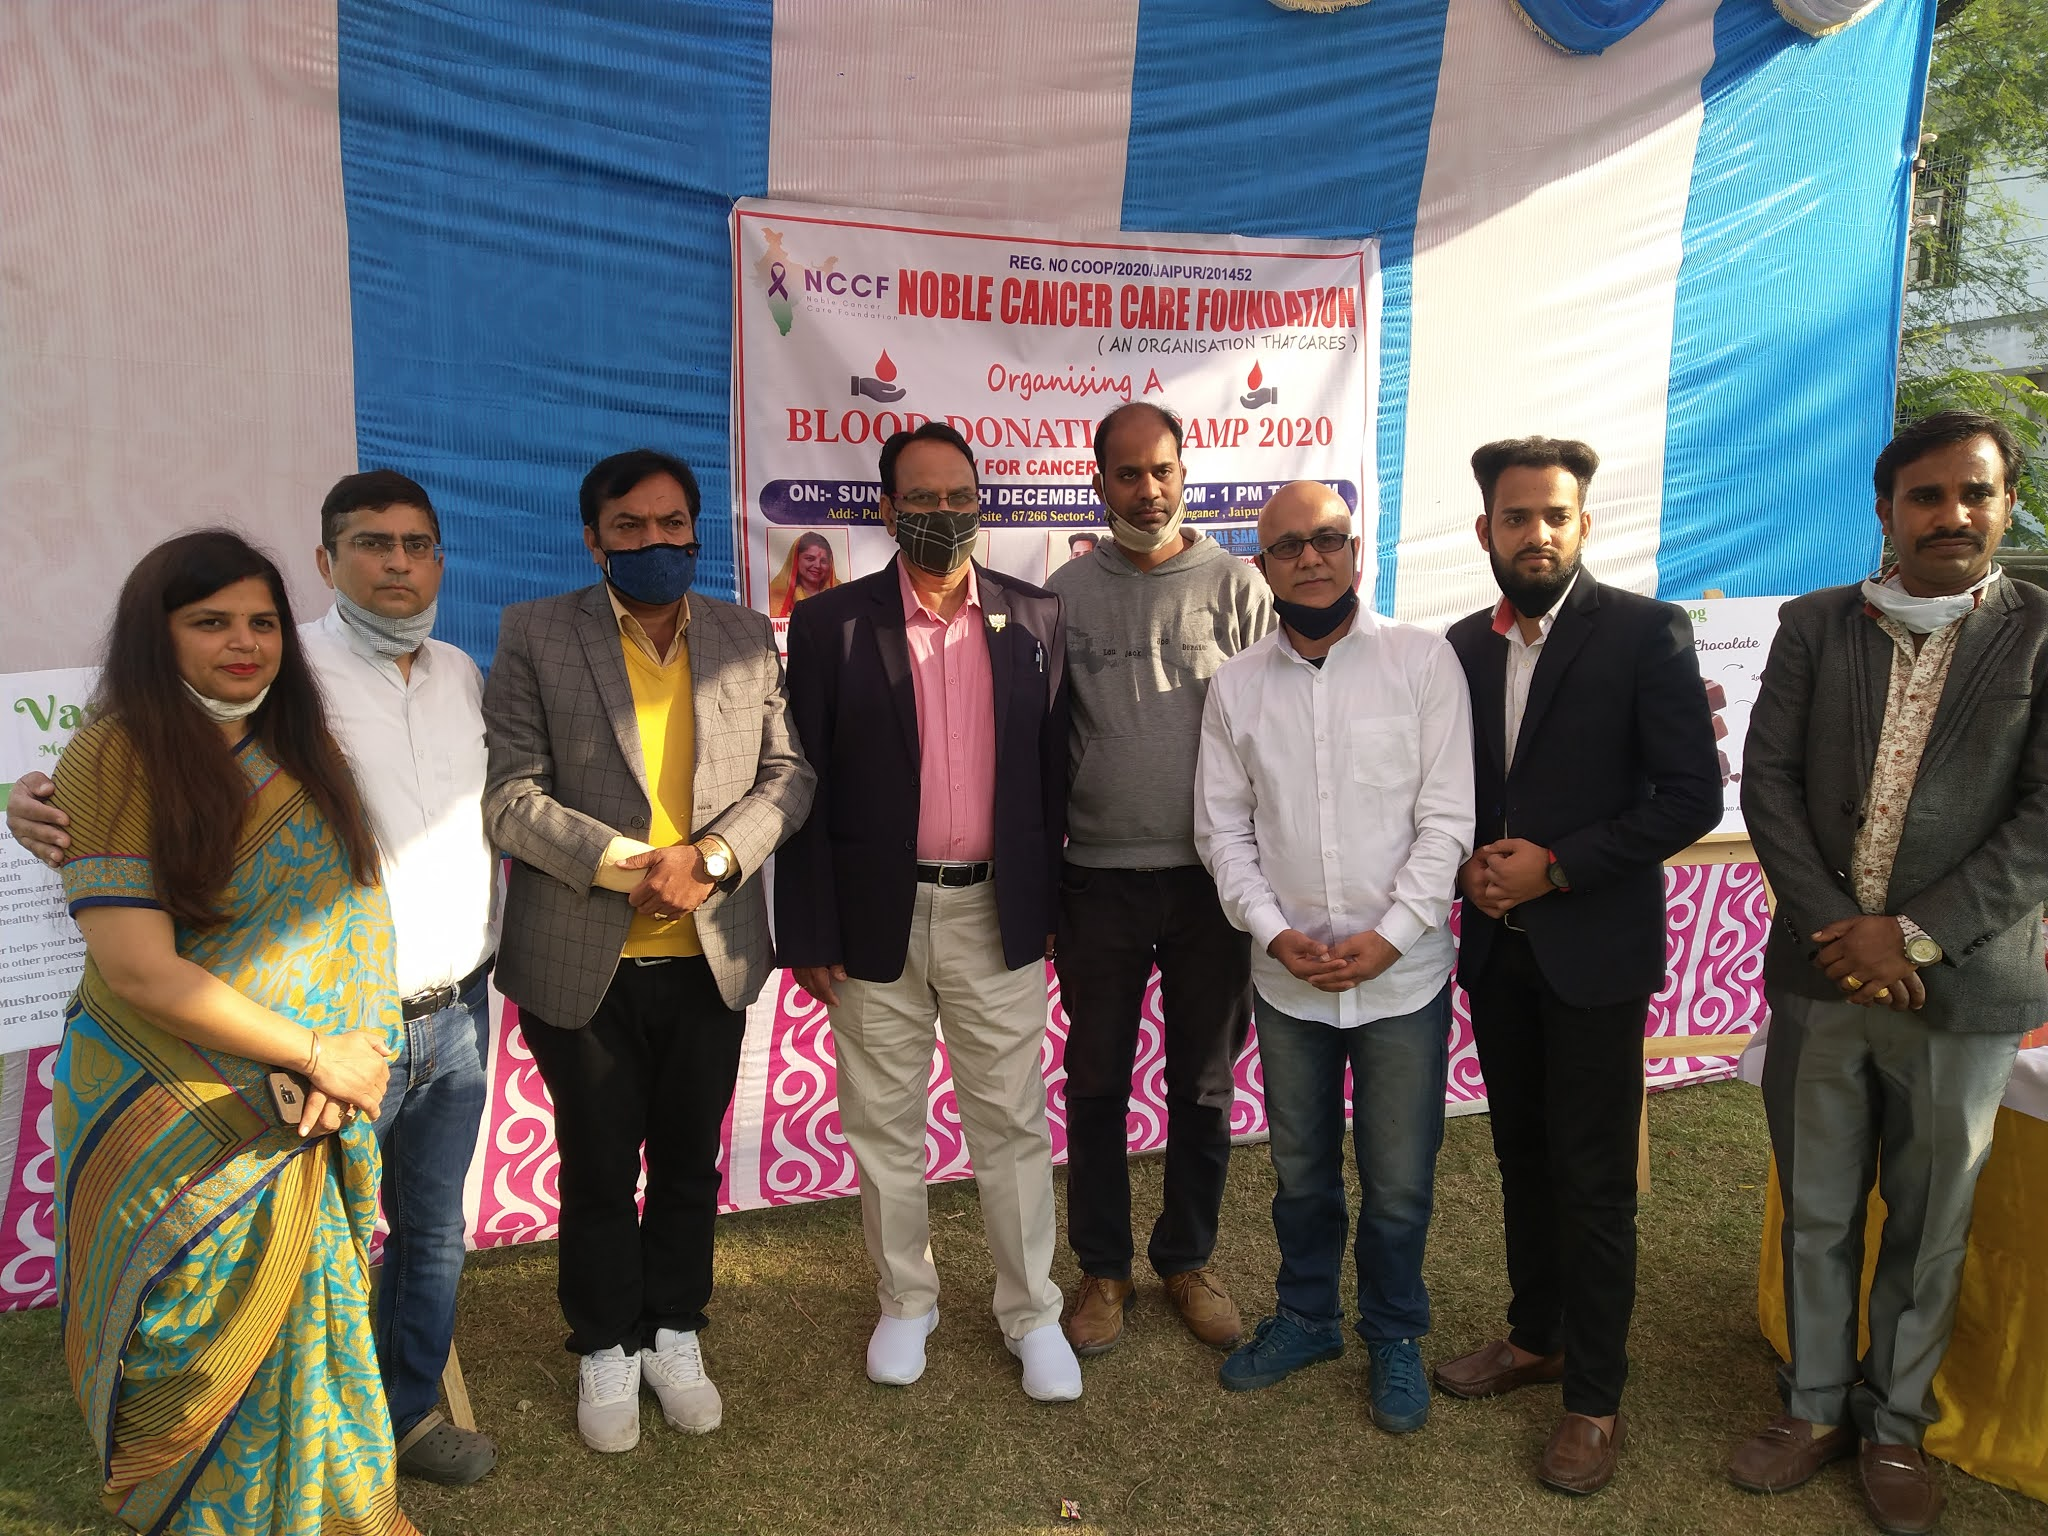 Blood-donation-camp-organized-by-Noble-Cancer-Care-Foundation-in-the-city-Jaipur